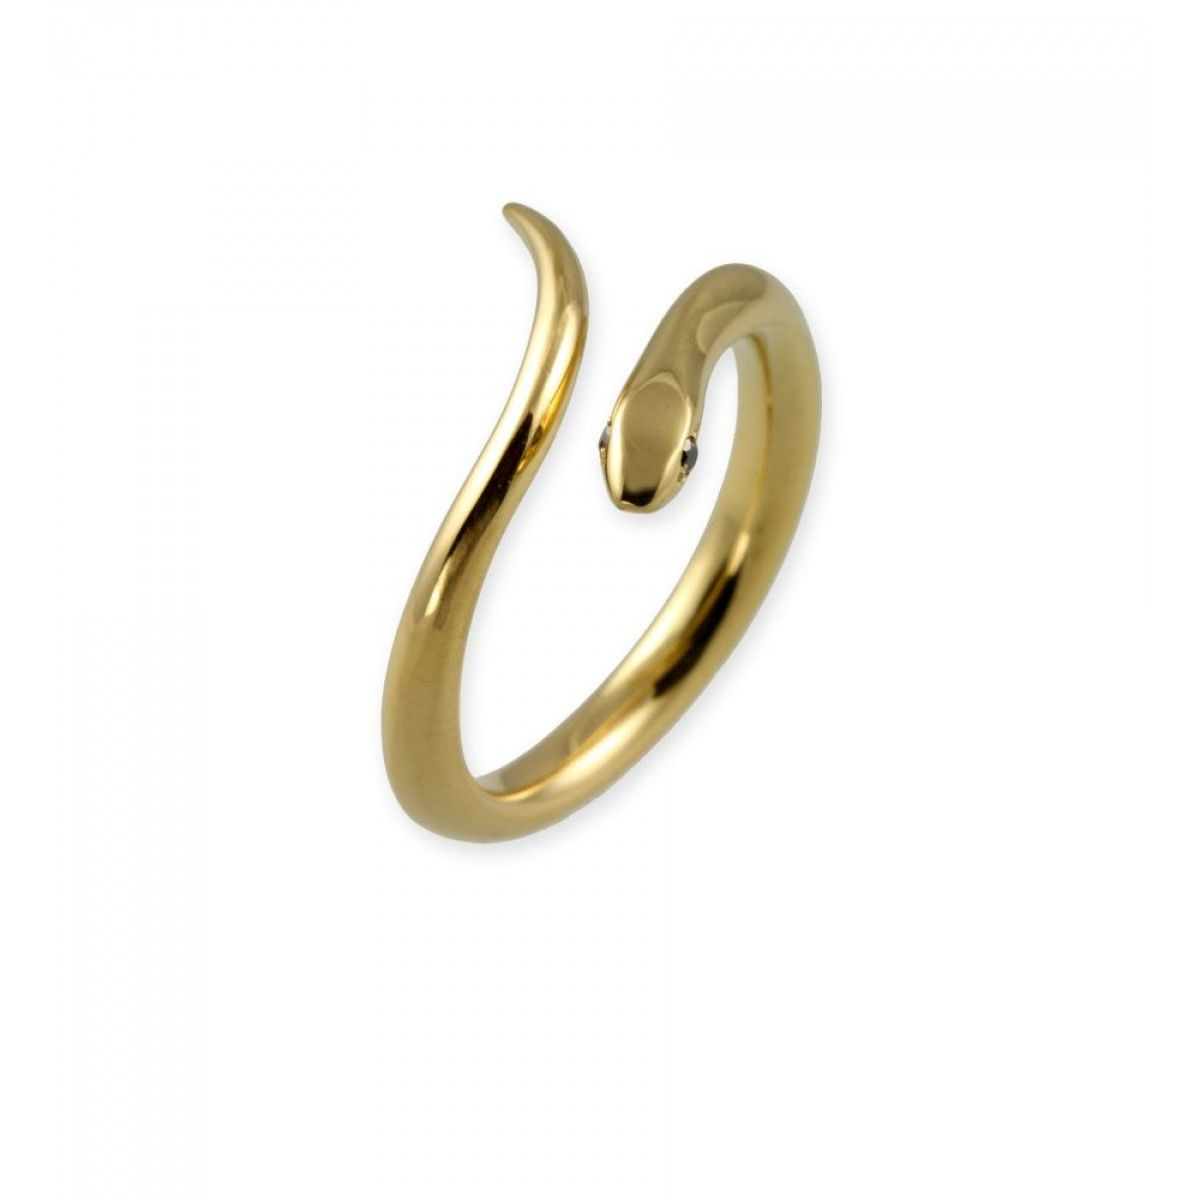 Jana Reinhardt Gold Plated Silver Snake Hoop Earrings With Black Diamonds bVaEcM2JS